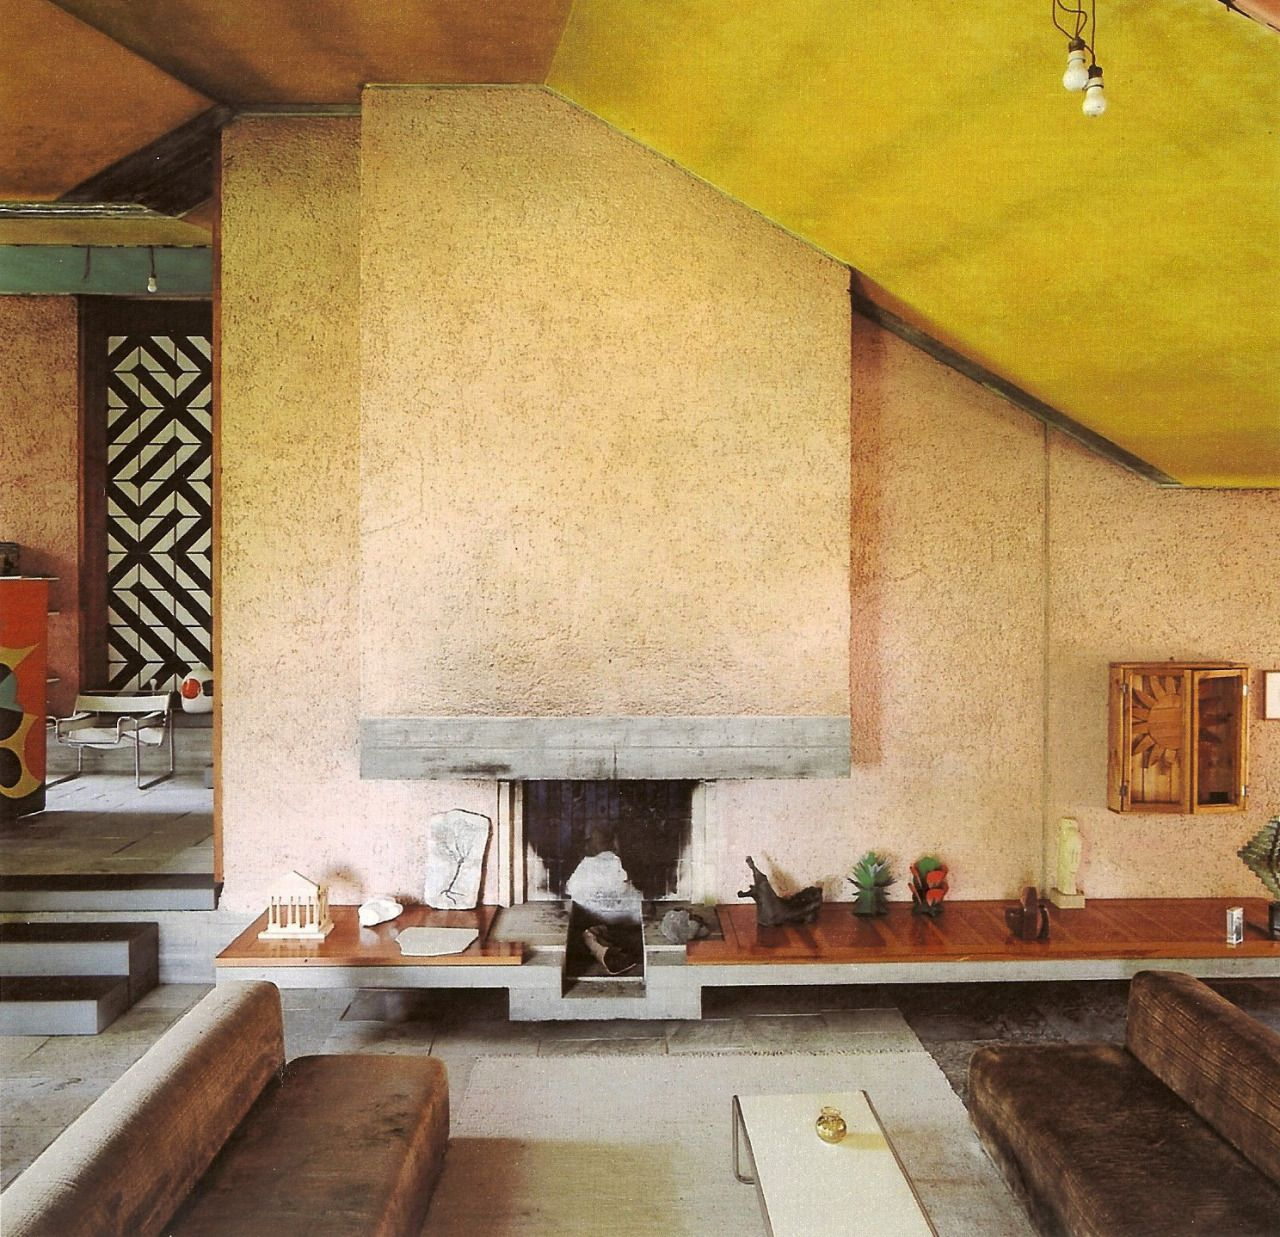 Casa Décoration Maison Carlo Scarpa Casa Tabarelli Dreaming Of Dwellings And